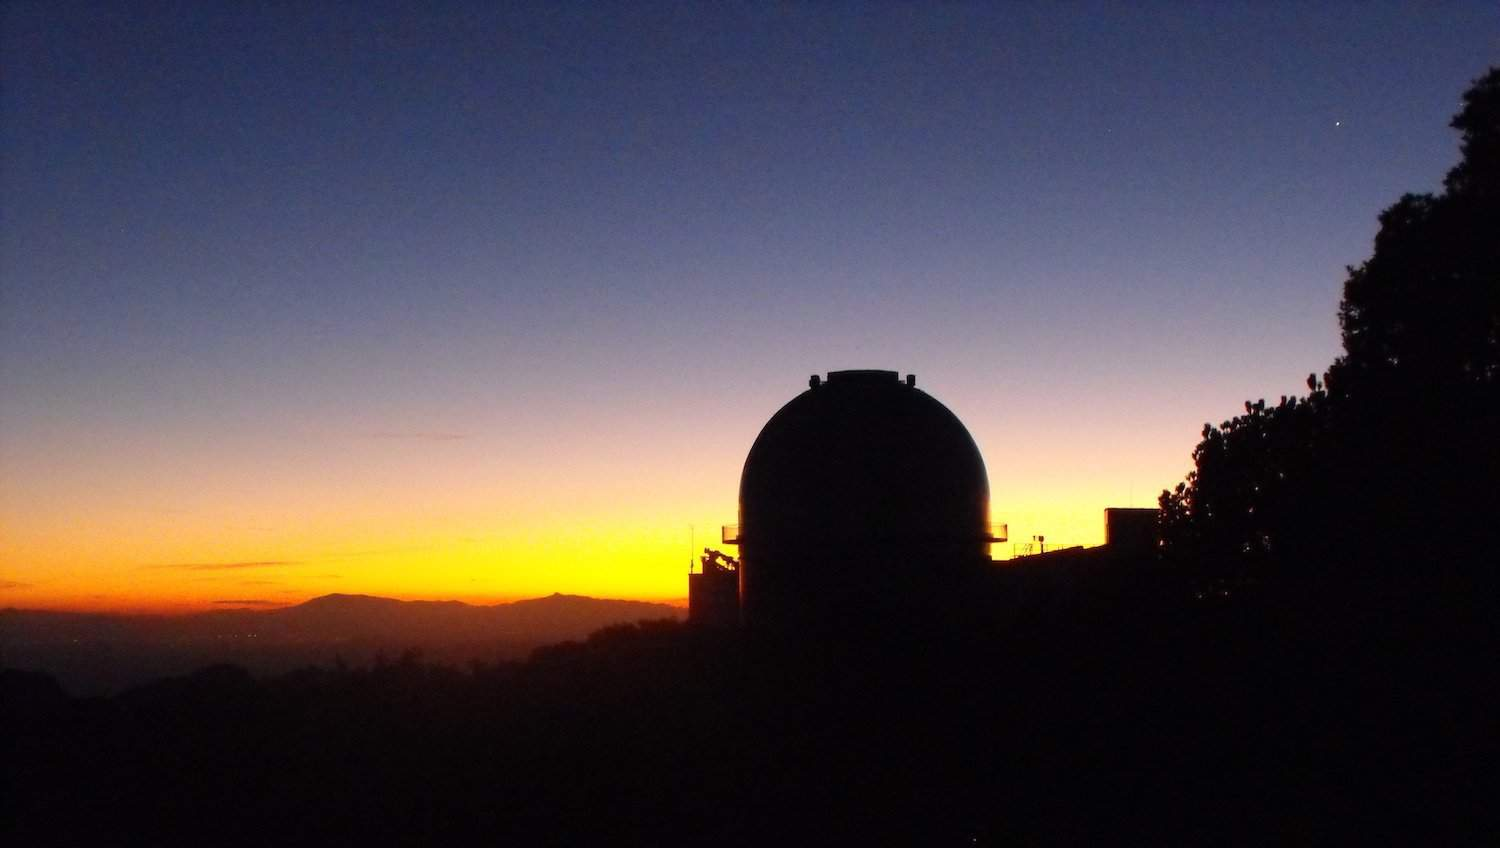 Stargazing in Tucson - Kitt Peak Observatory - Steve via Flickr